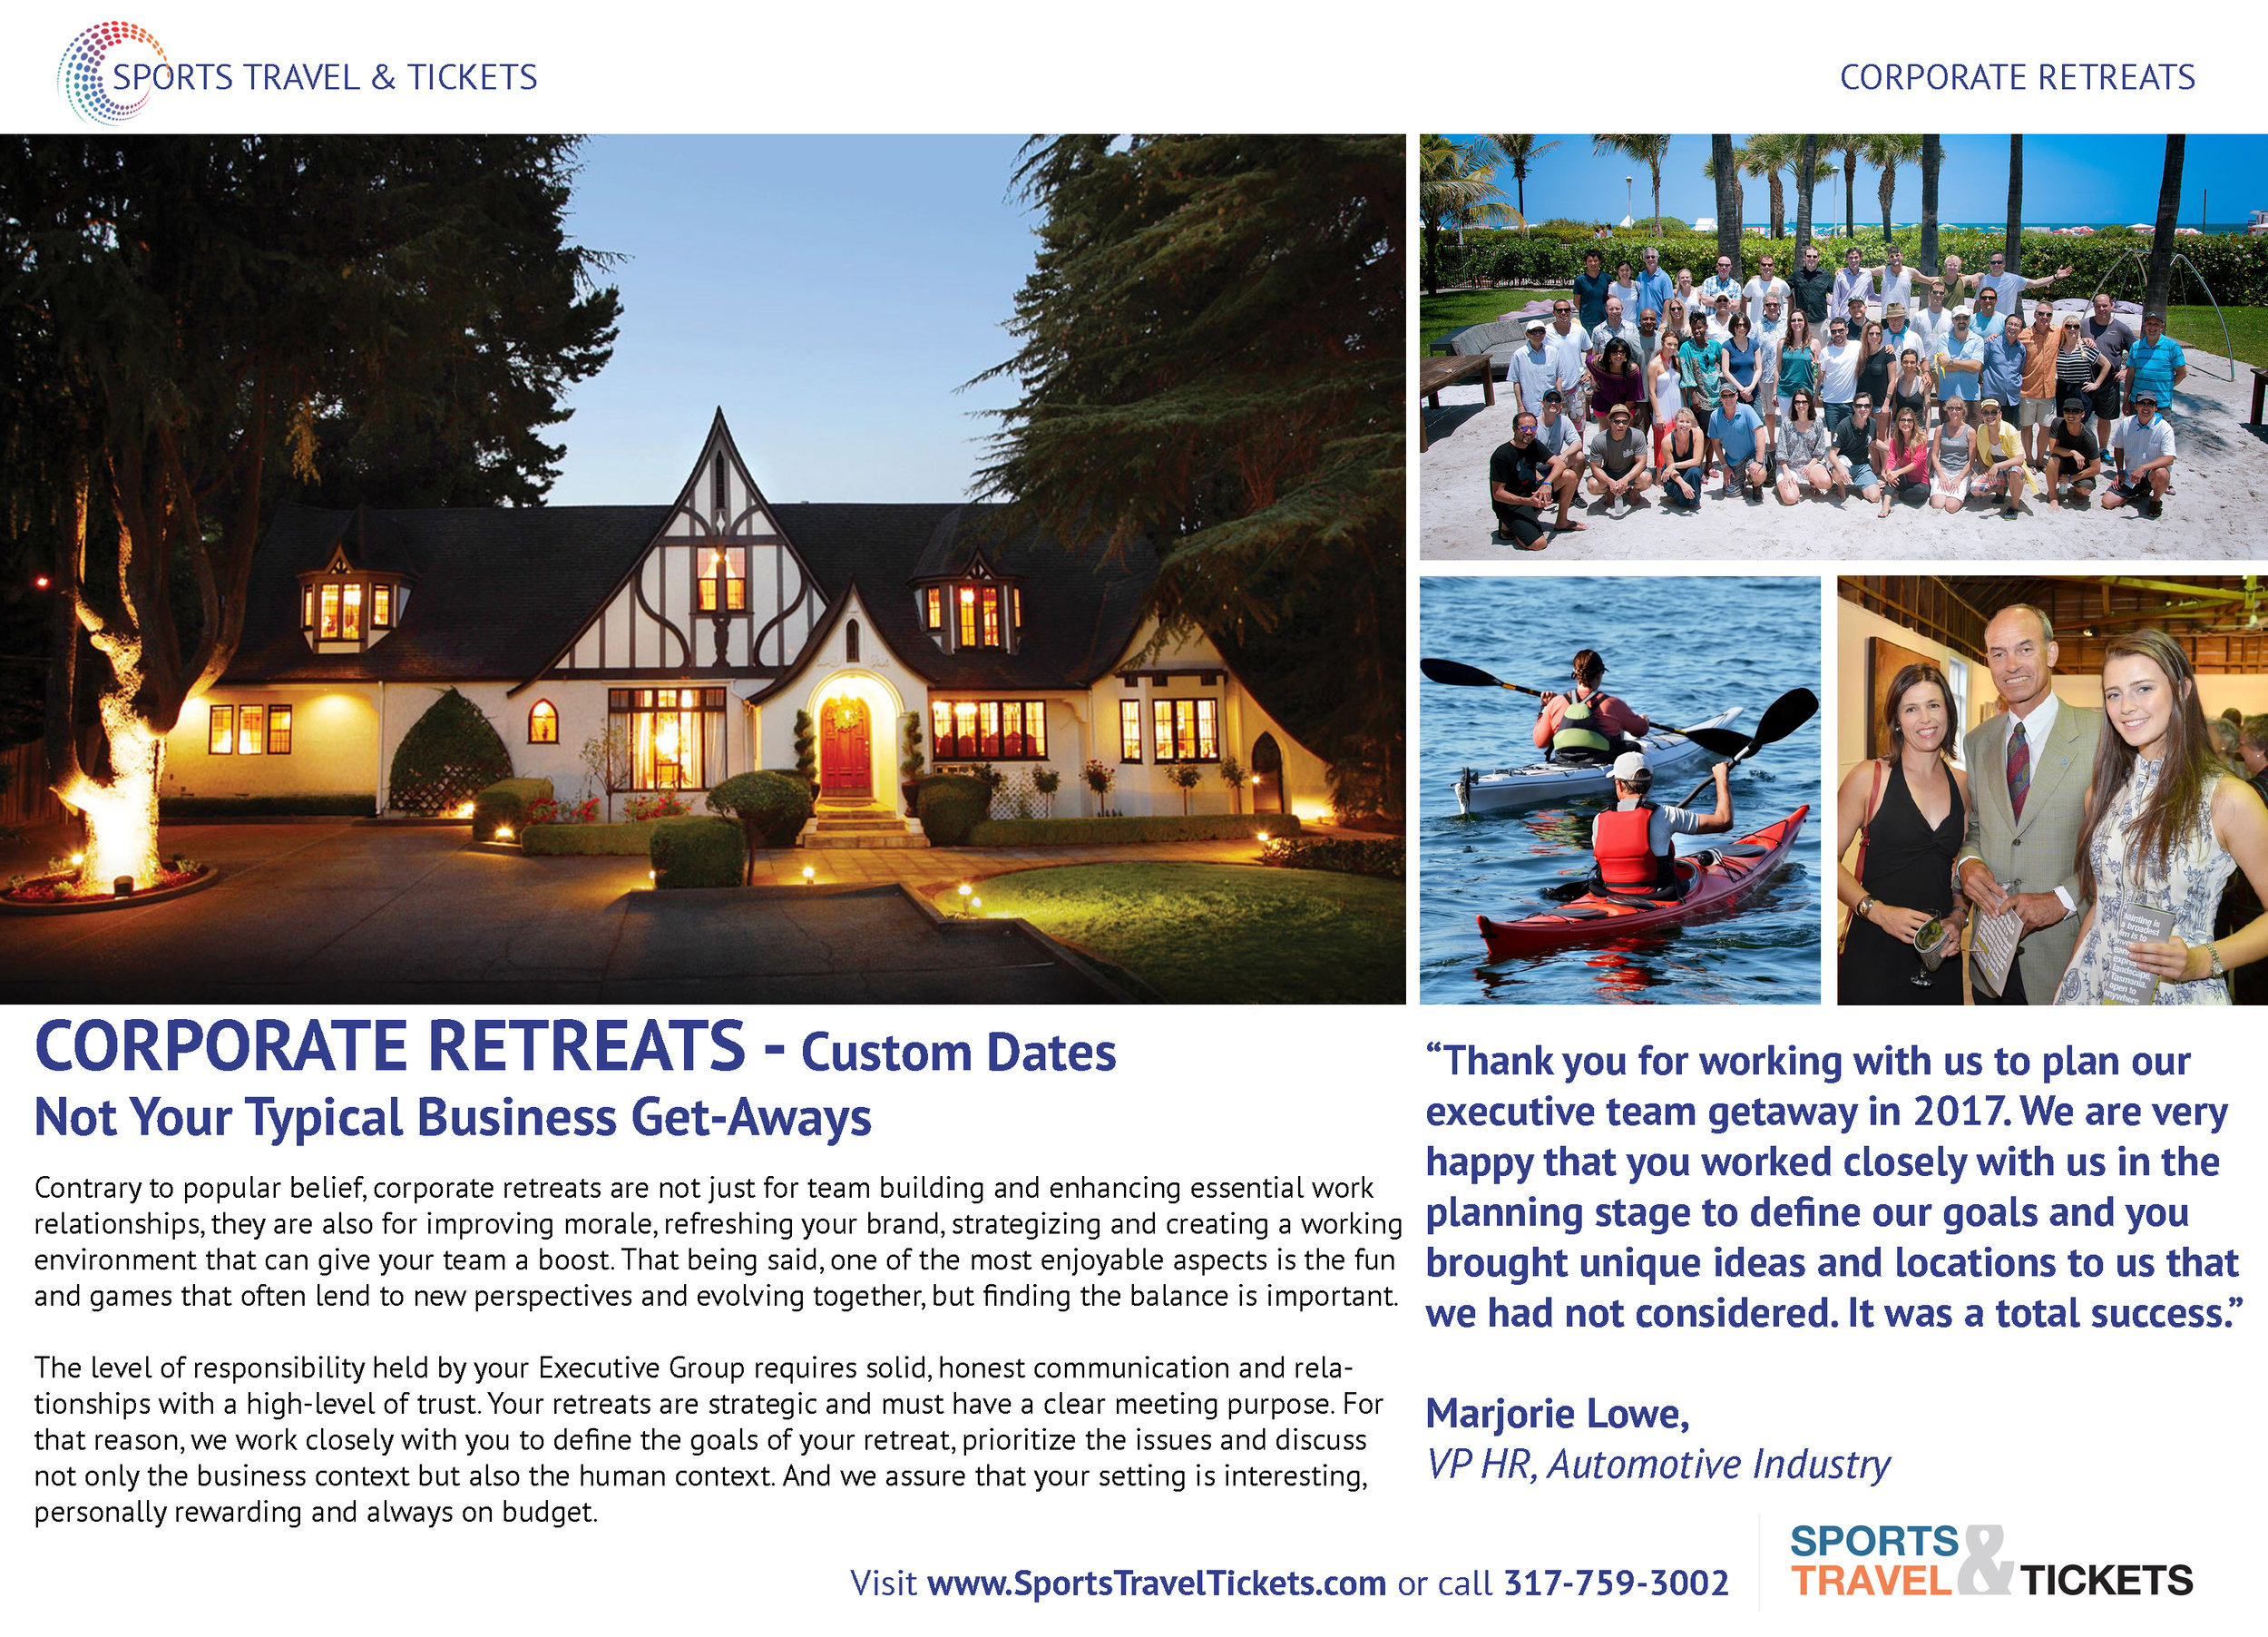 Sports Travel & Tickets Brochure Corporate retreats event planners CEO experiences.jpg